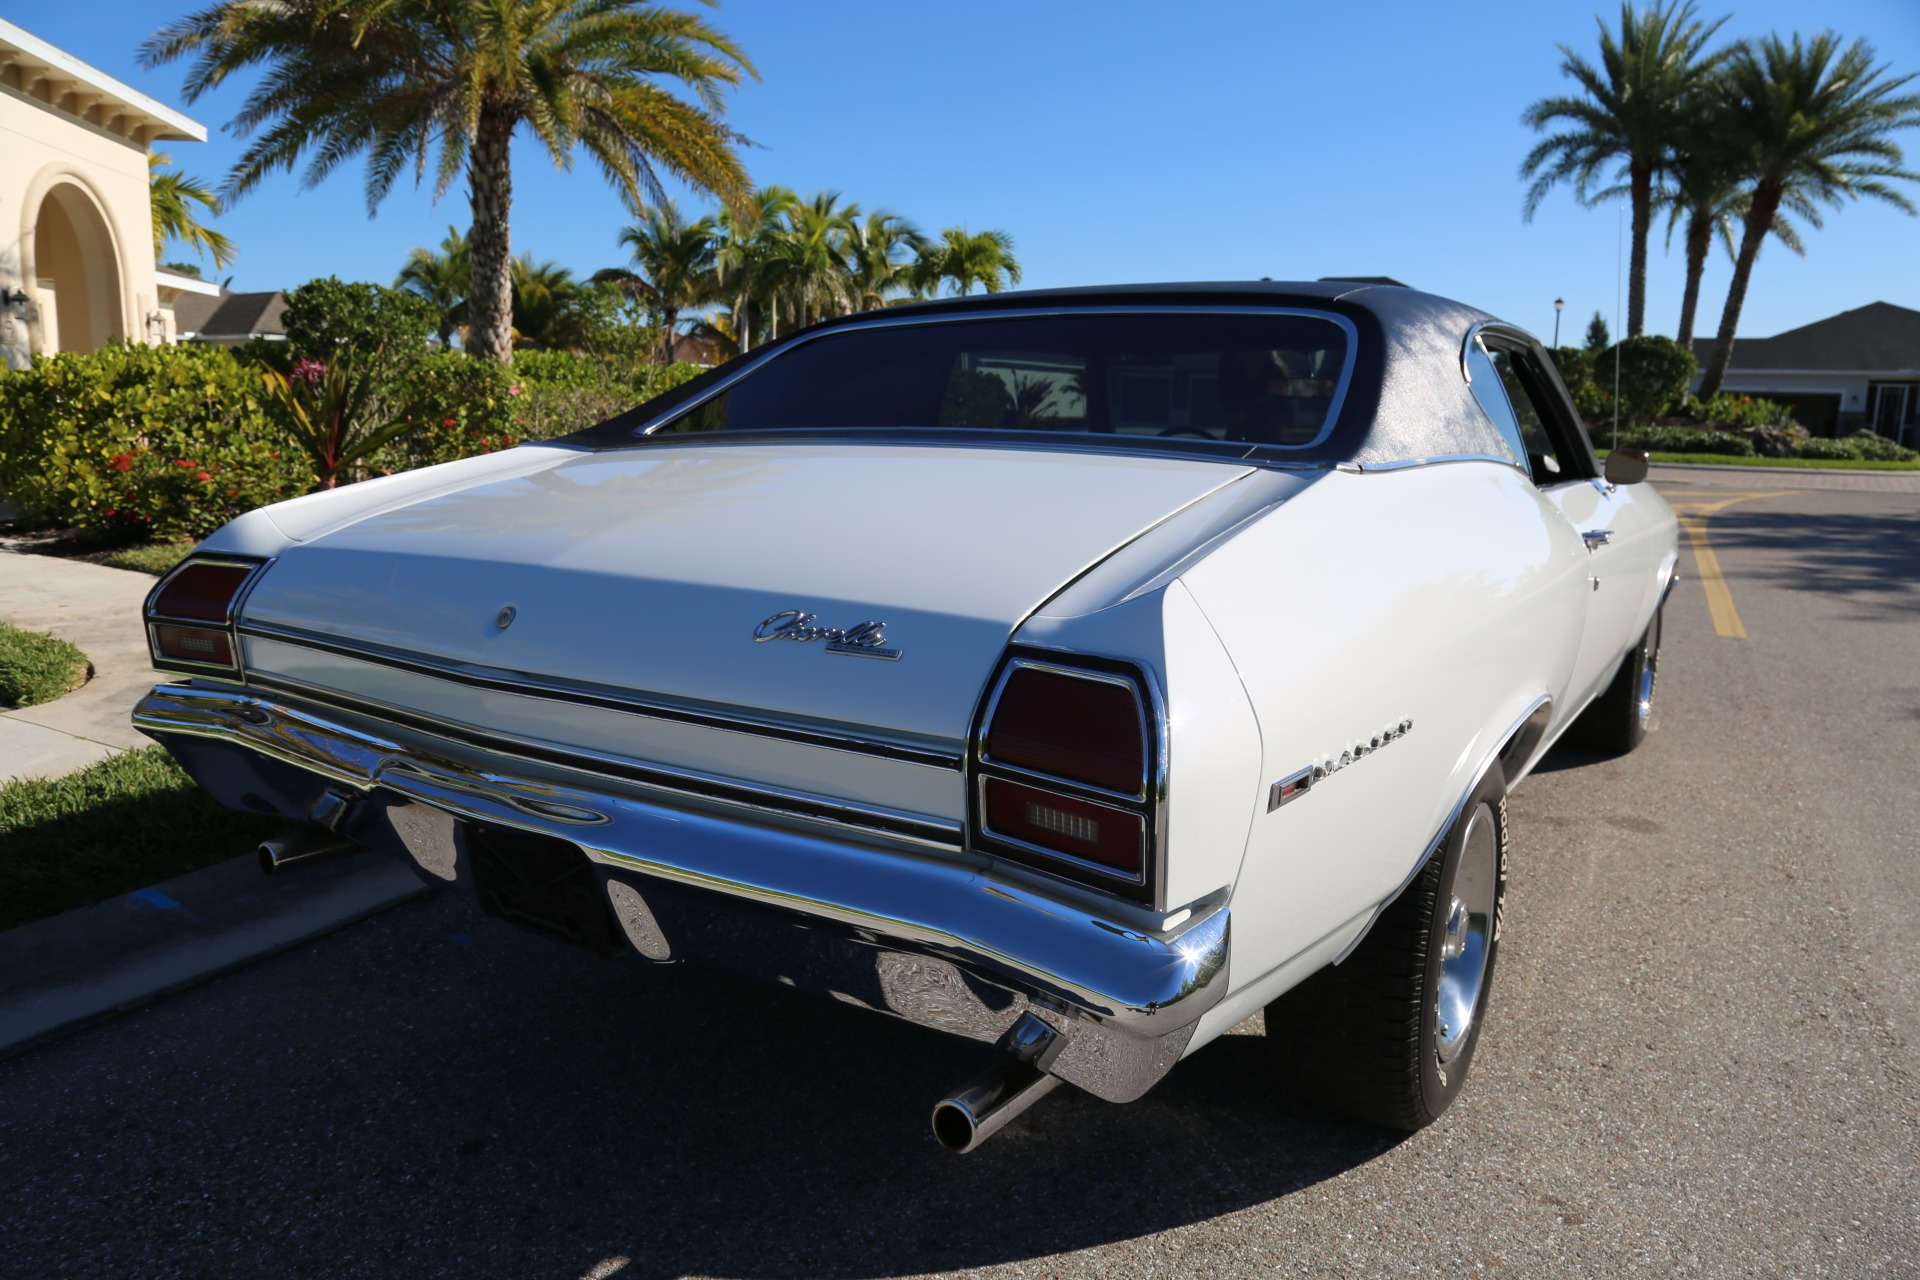 Used 1969 Chevy Chevelle V8 Auto for sale $27,000 at Muscle Cars for Sale Inc. in Fort Myers FL 33912 8